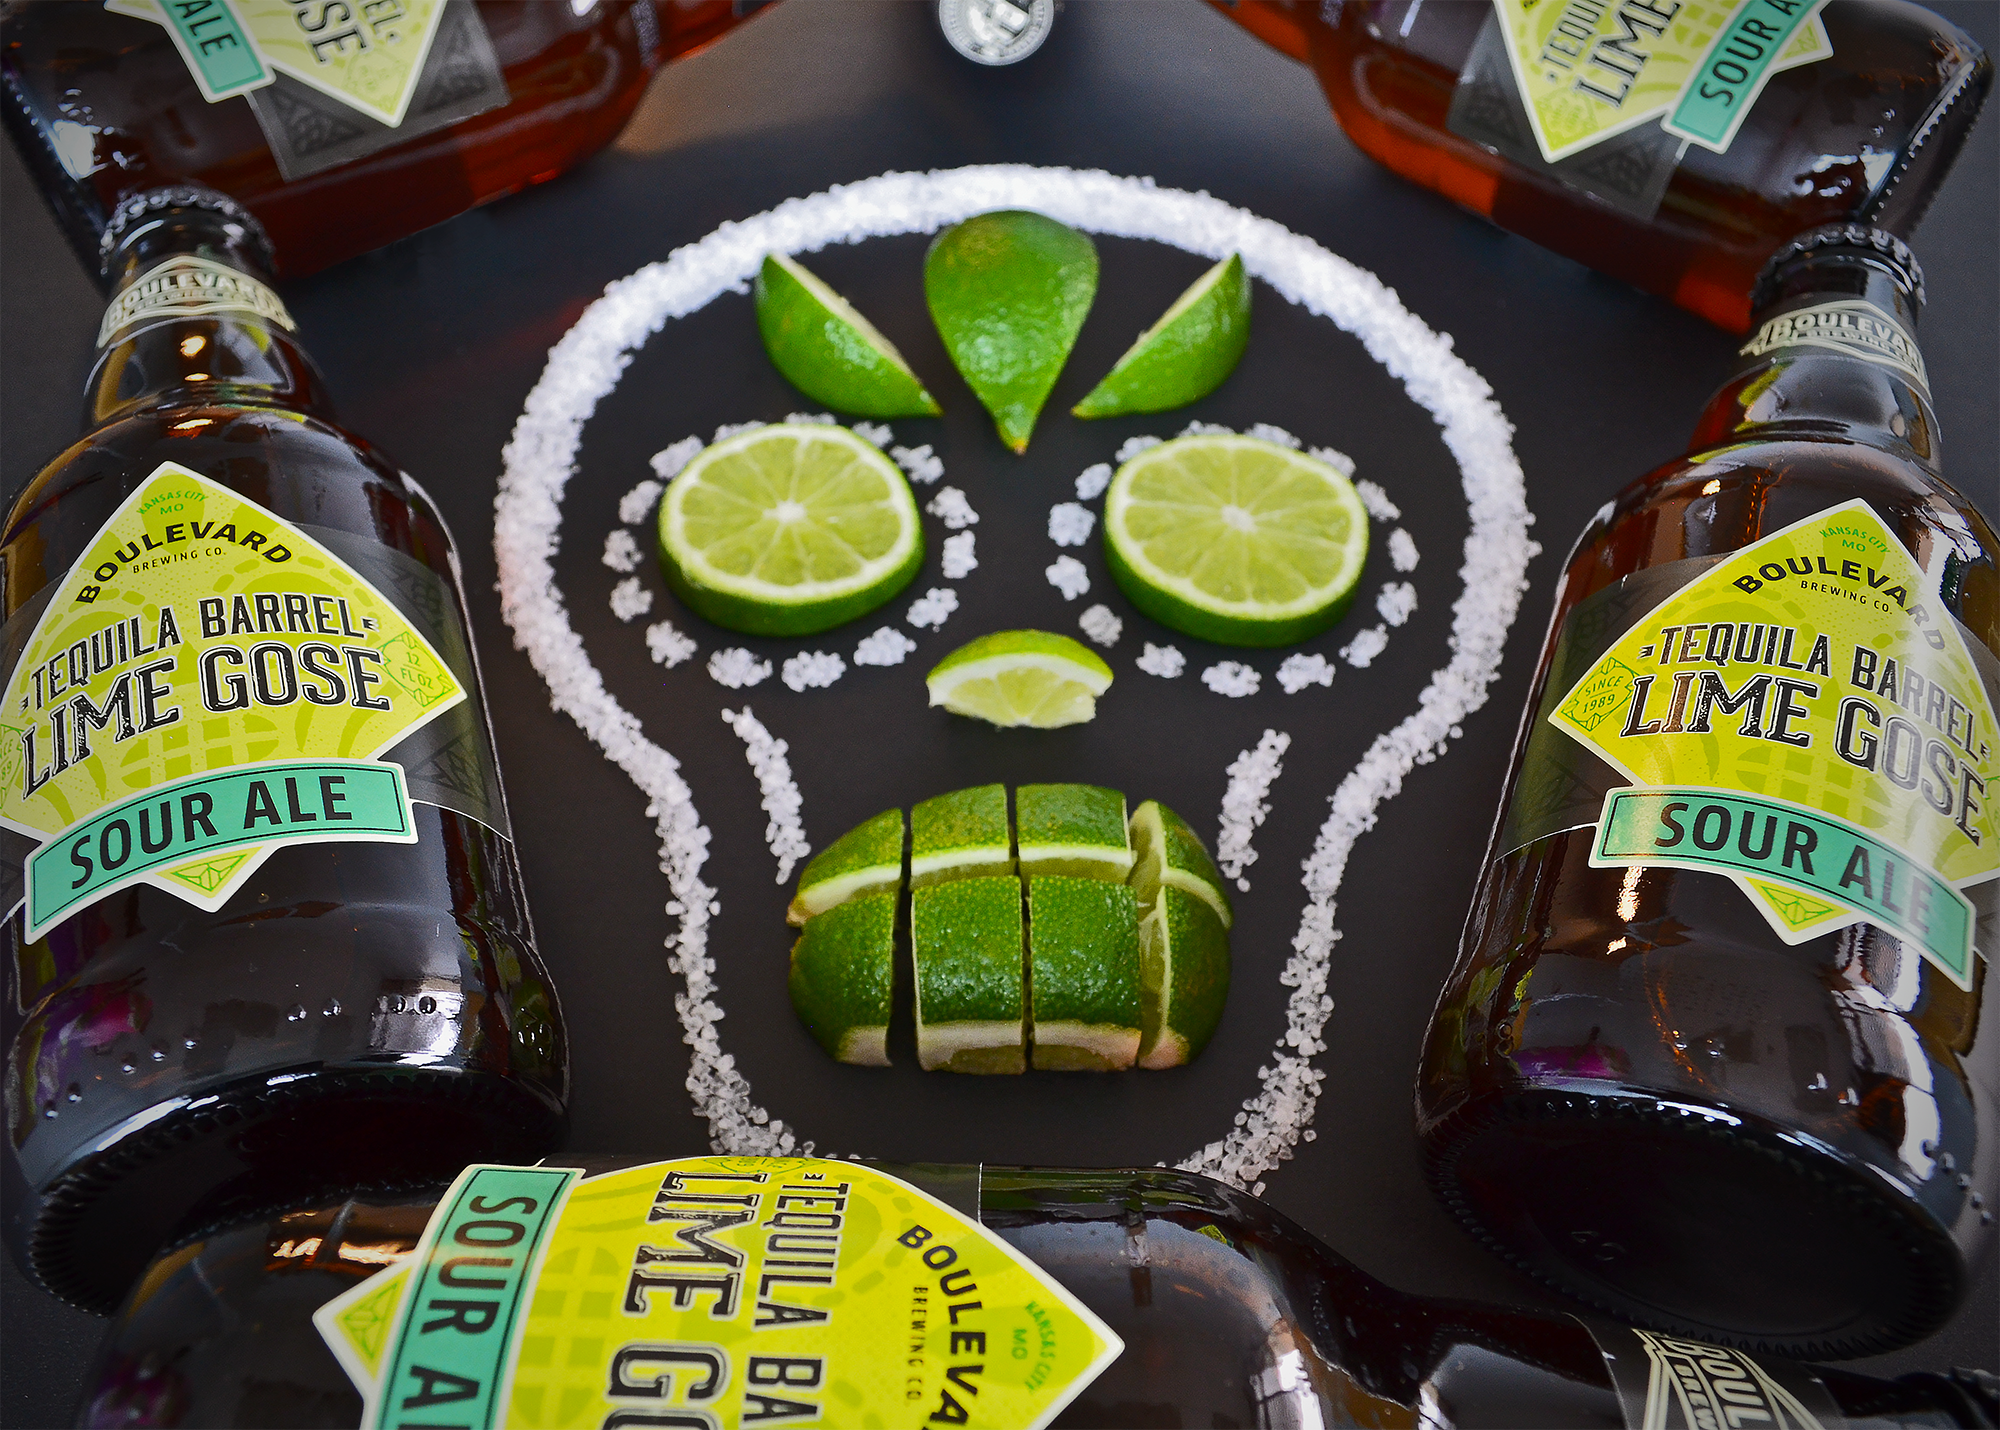 Tequila Barrel Lime Gose Returns